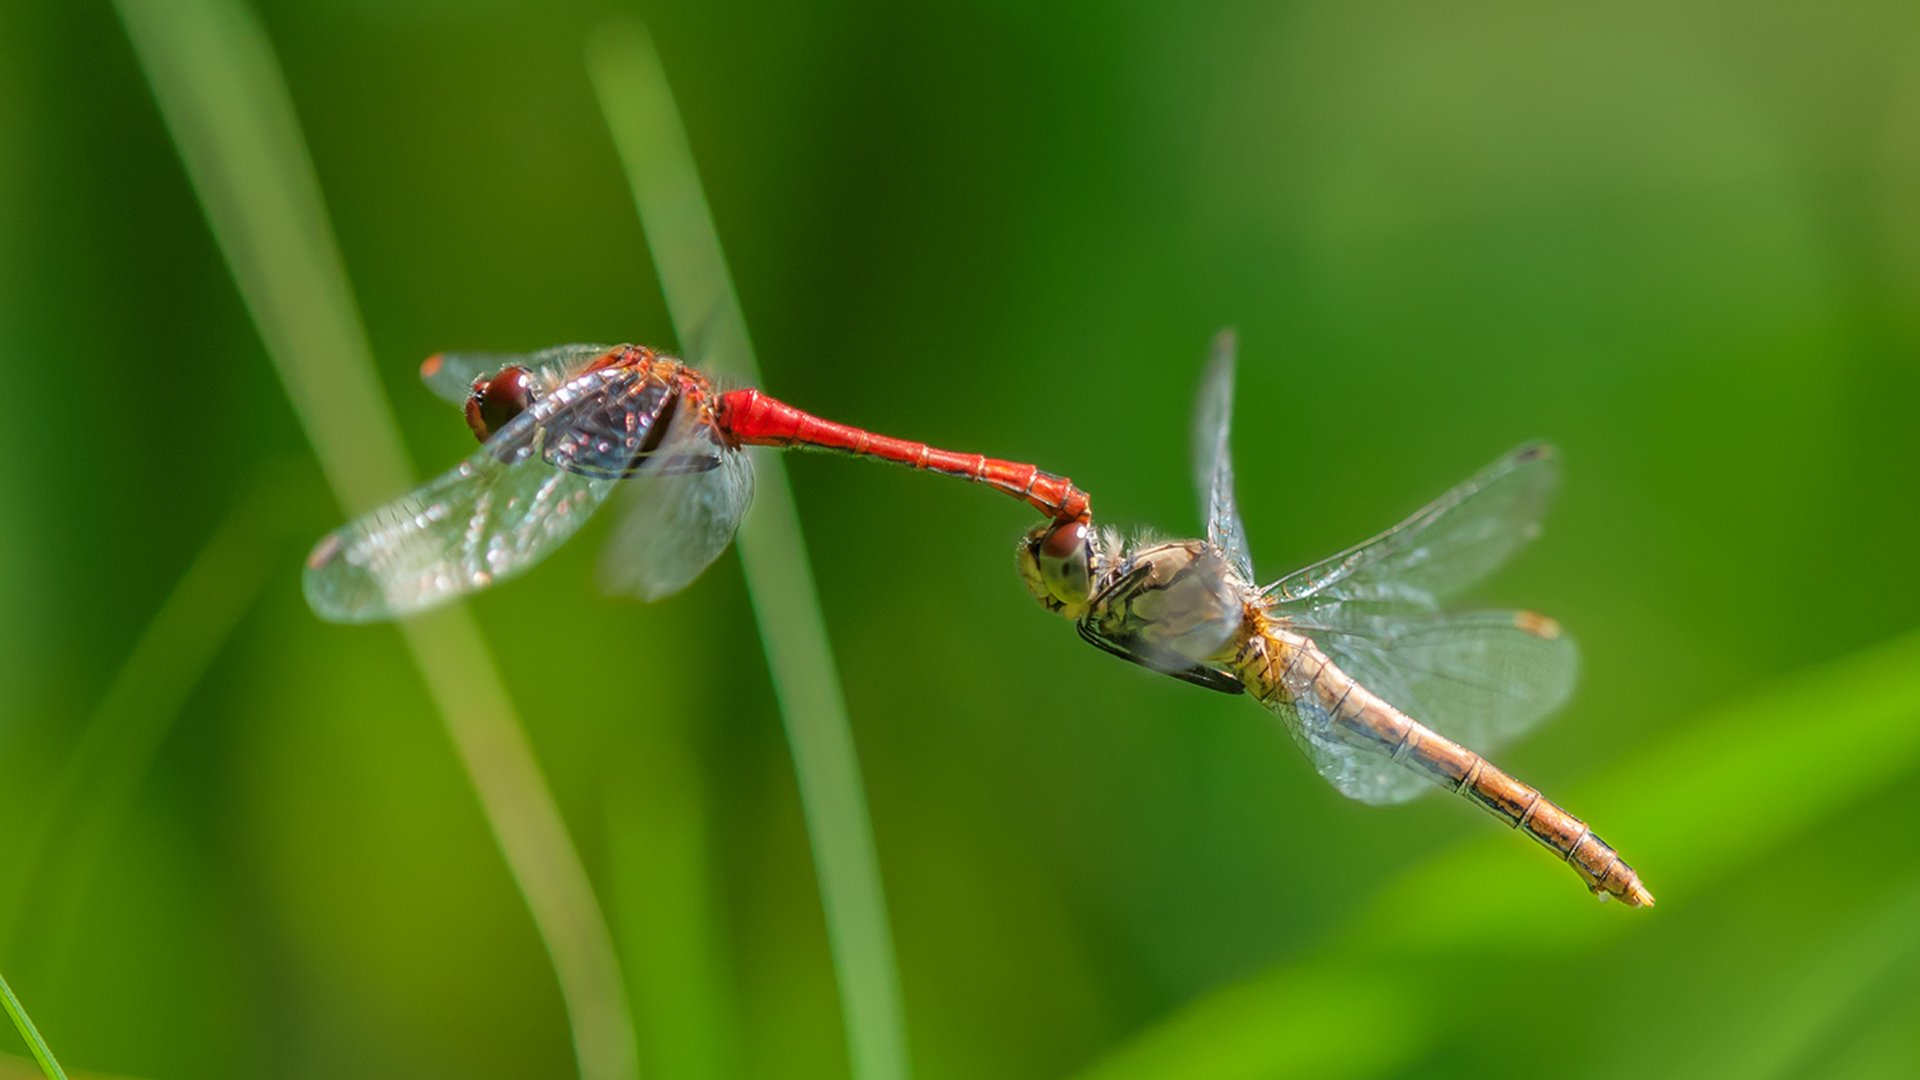 Red Dragonfly Computer Wallpapers Desktop Backgrounds 1920x1080